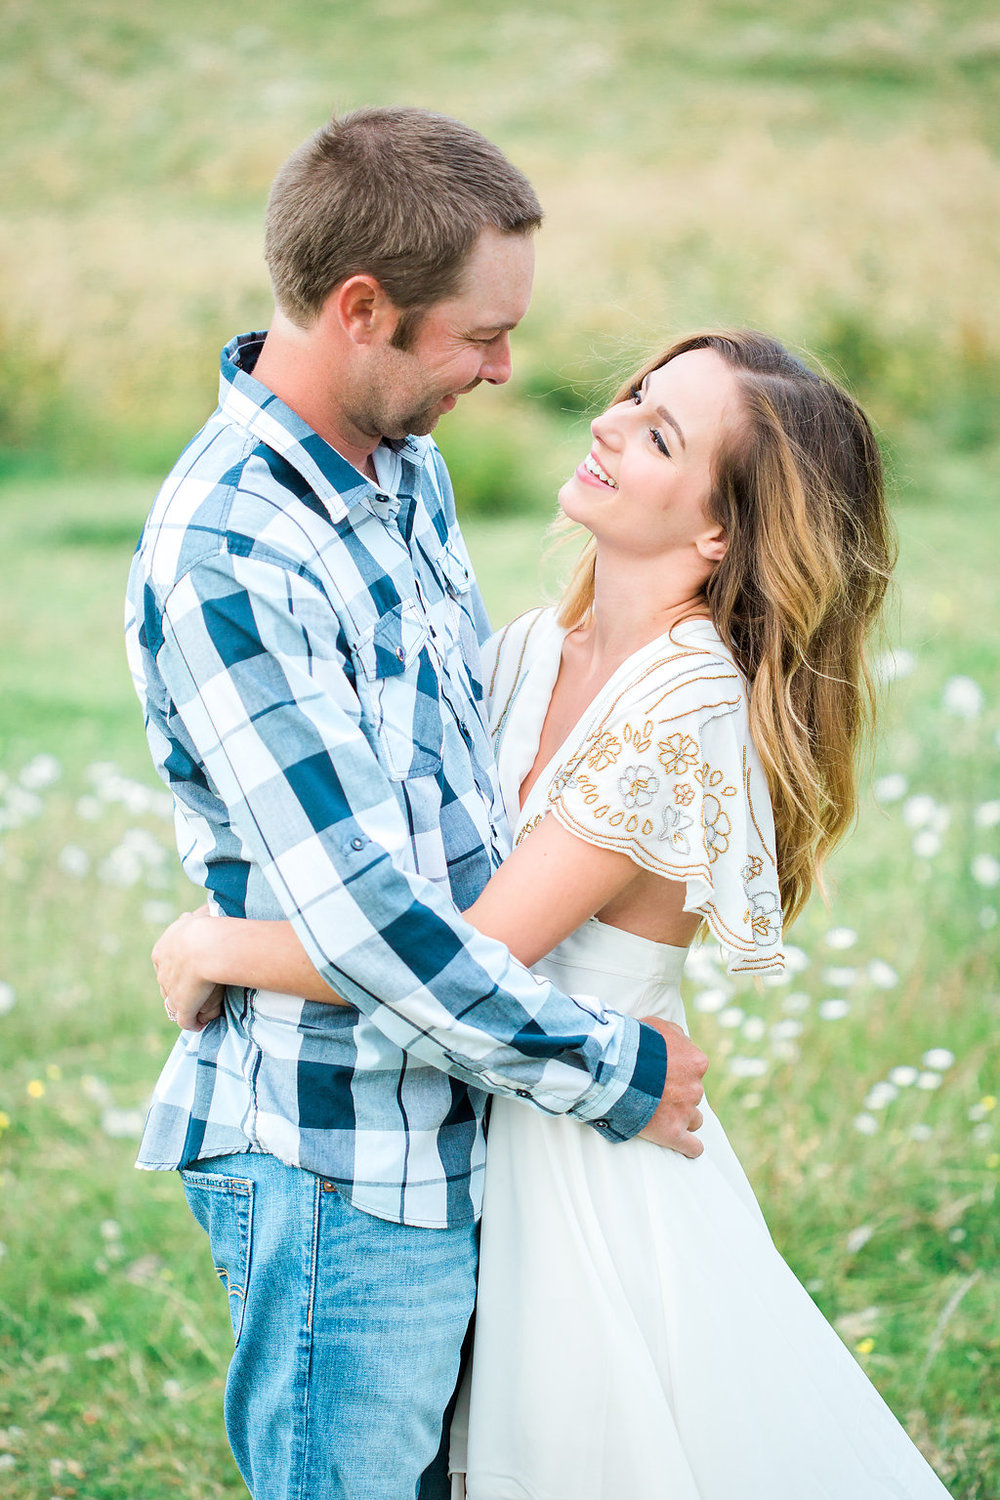 Beautiful outdoor engagement session | What to wear | Photo Inspiration | Engagement session | Portrait | White | Detail Shots | Mastin Labs | Engaged | Fuji 400 | Beautiful Couple | Couple in Love | Beautiful posing